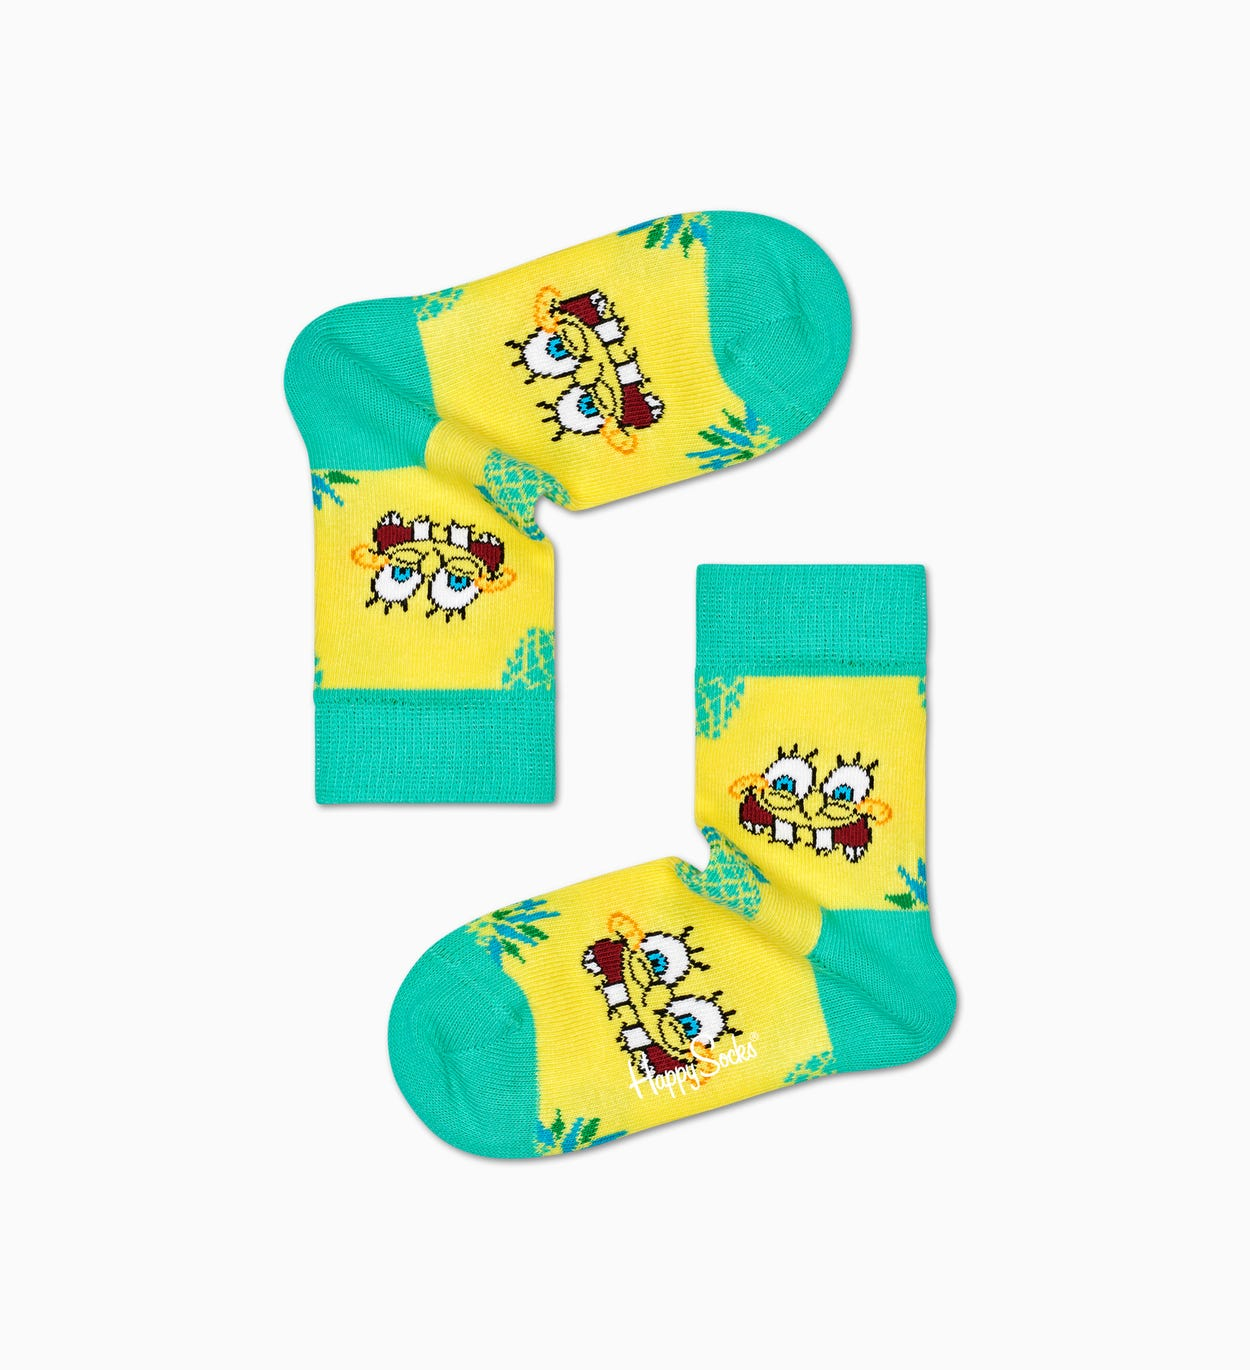 Happy Socks x Sponge Bob: Fineapple Surprise Socken für Kinder